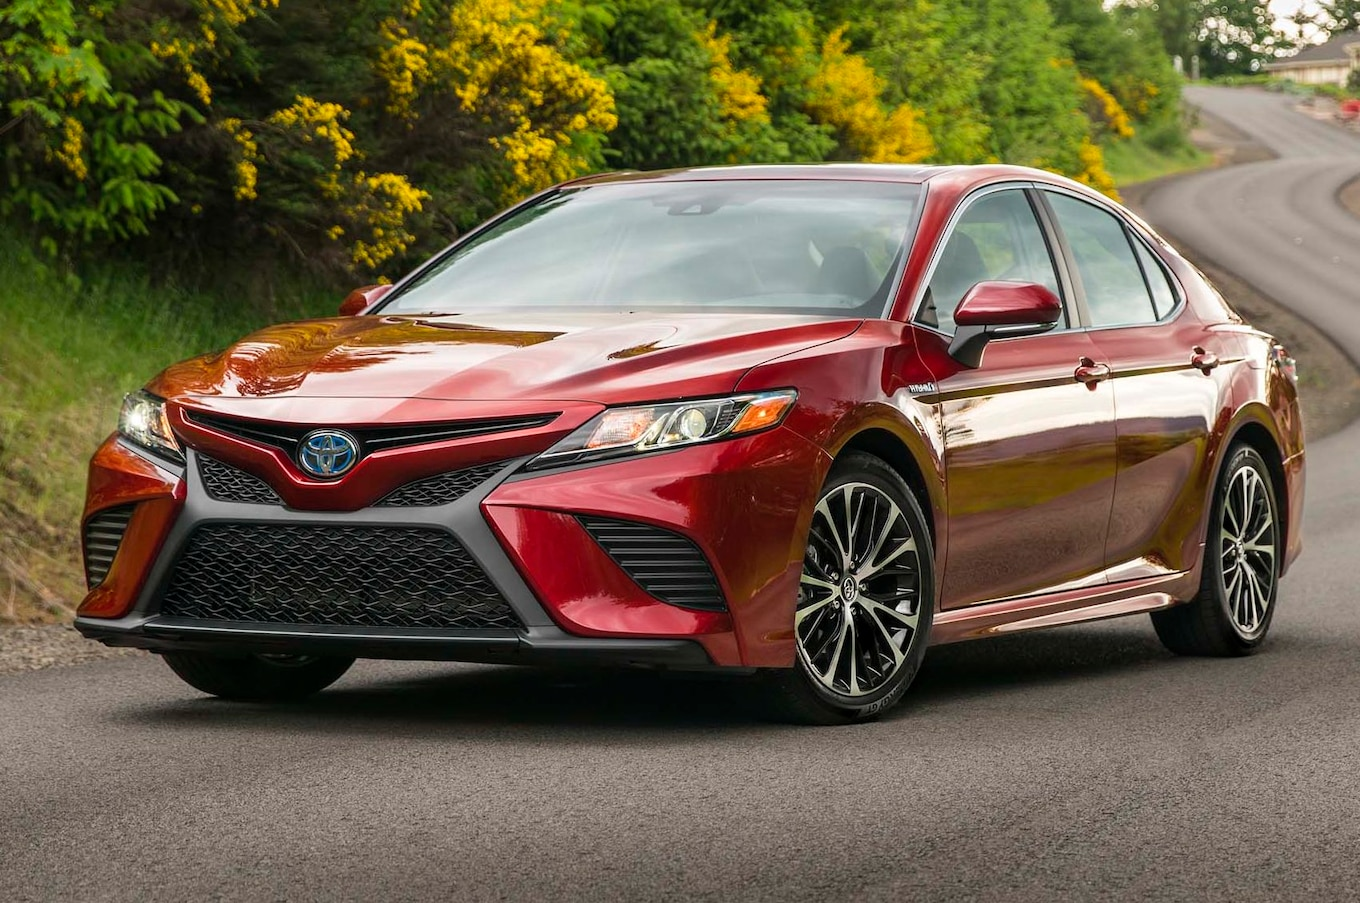 all new camry 2017 indonesia 2018 thailand toyota first drive review boldly going motortrend